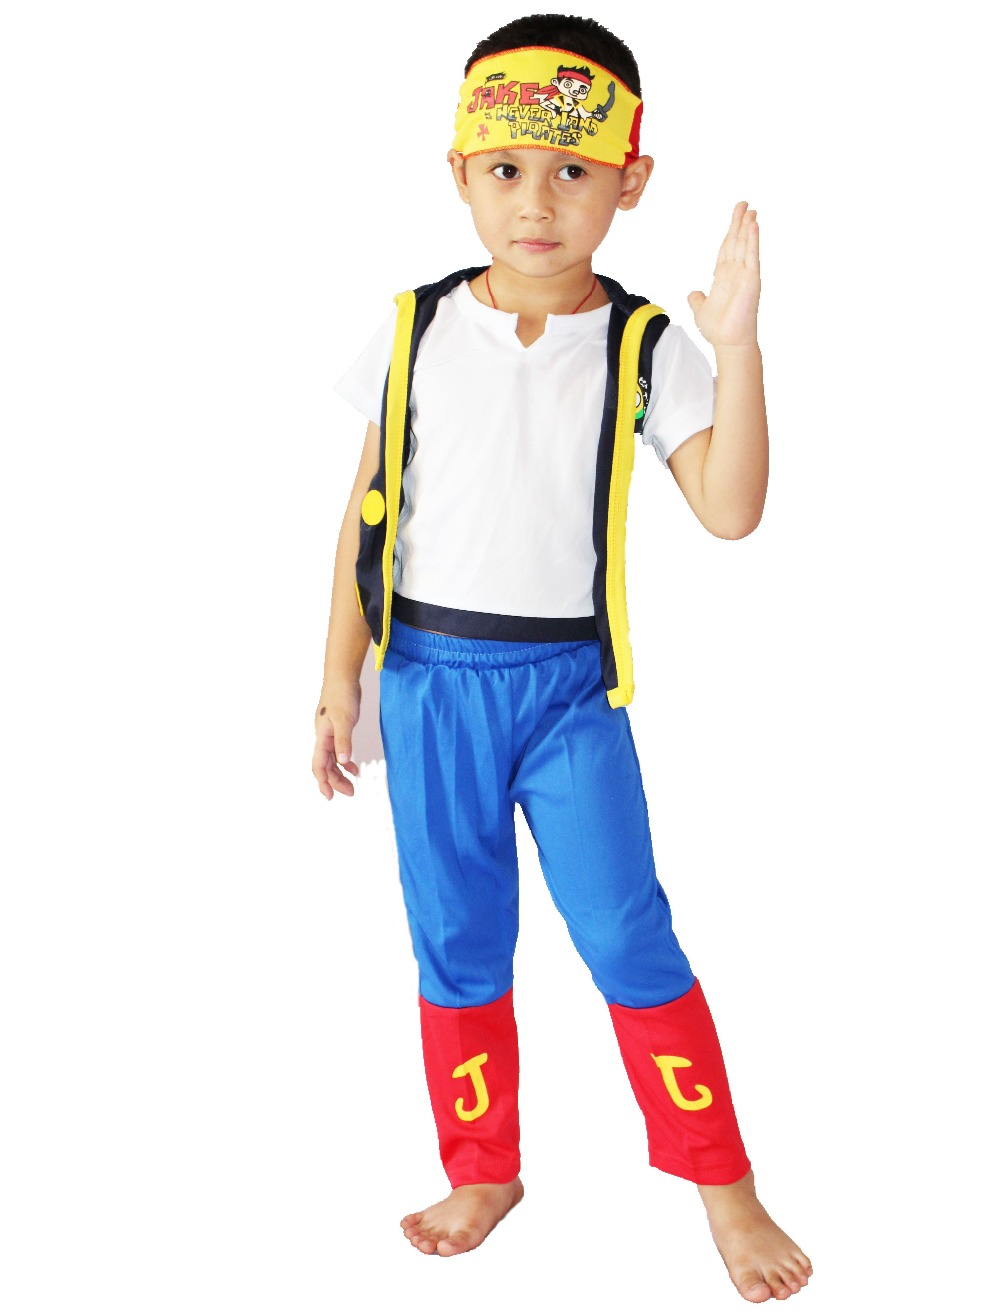 retail - Halloween Party costumes Hallowmas 3 - 7 Years kid One Piece Role-playing clothing Boy pirate costume Cosplay T- shirt